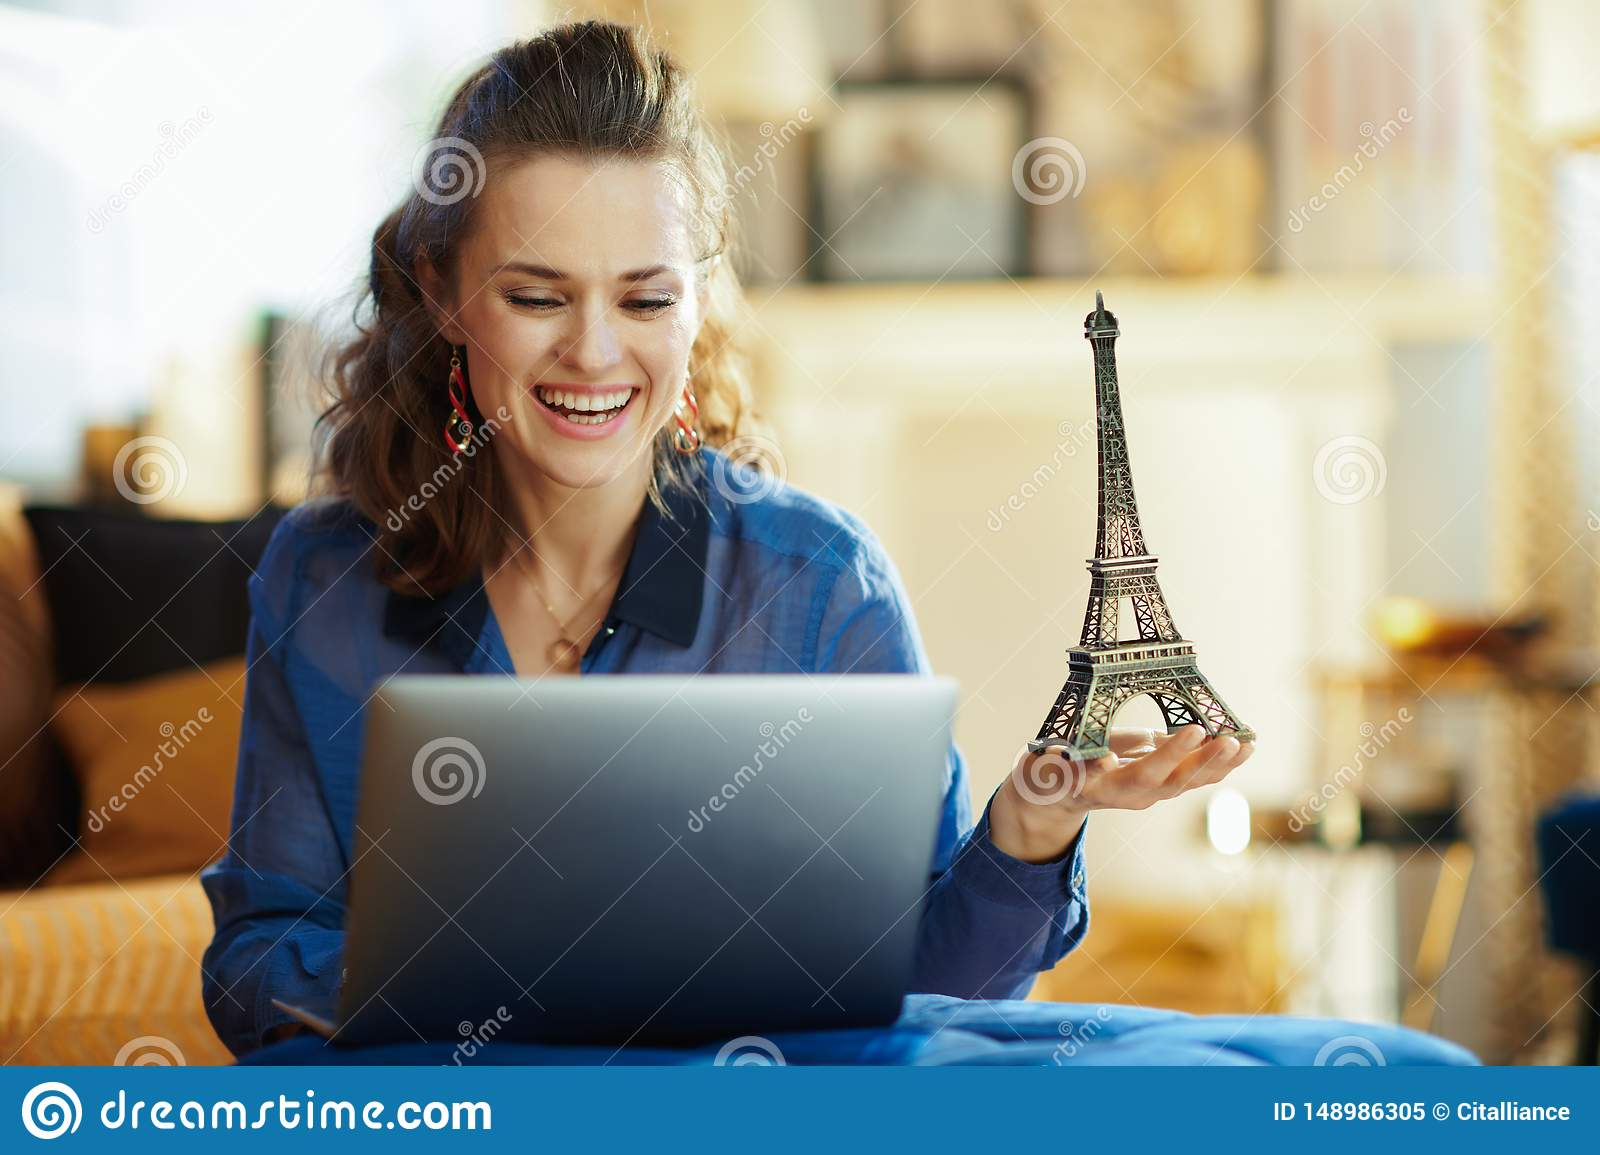 Happy modern woman with souvenir of eiffel tower using laptop